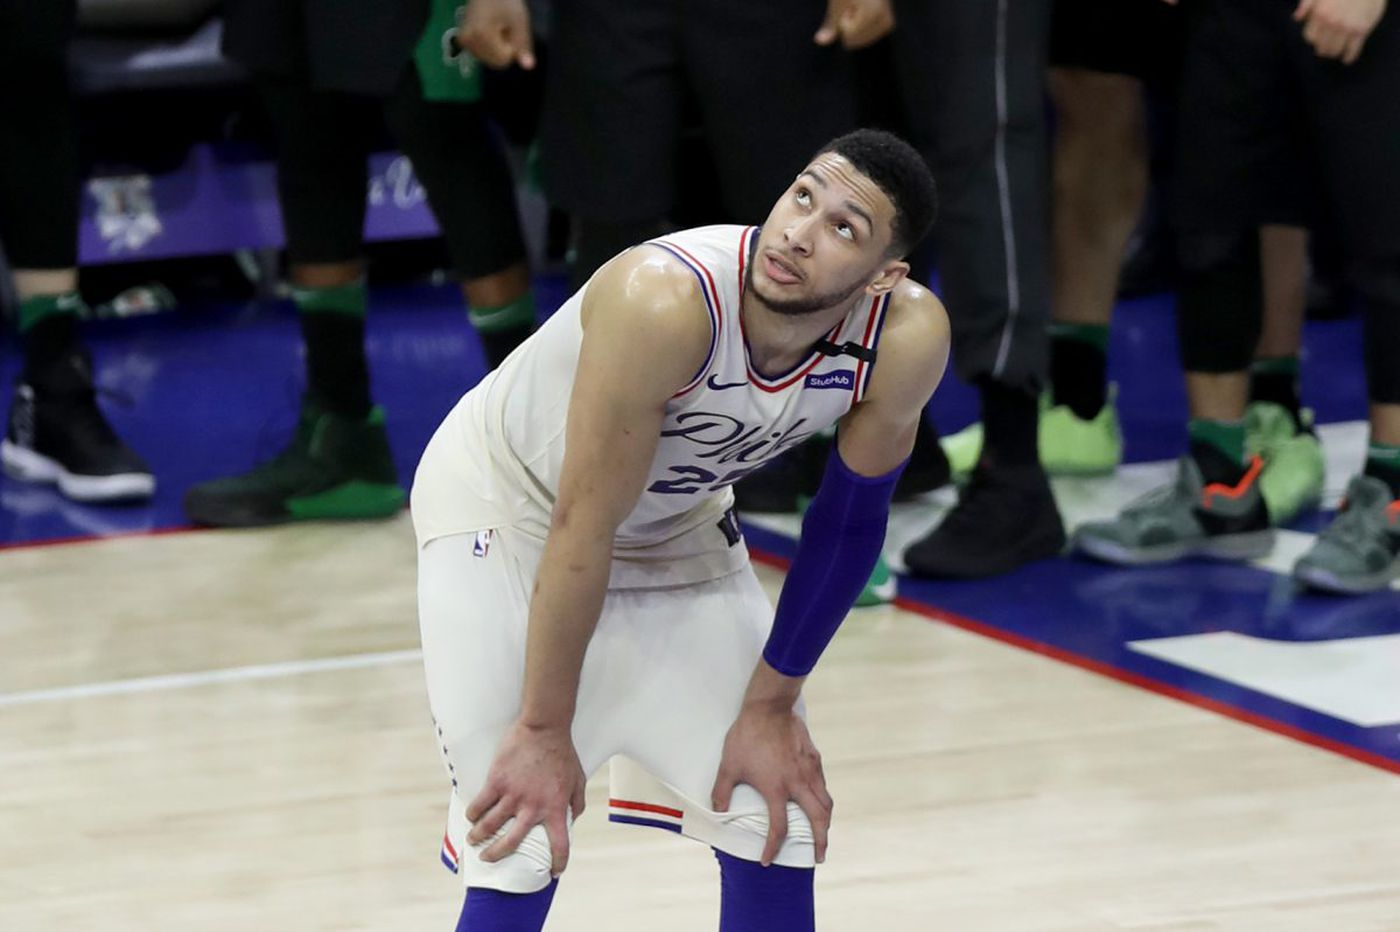 Ben Simmons' recklessness and overconfidence cost the Sixers in Game 3 | Mike Sielski